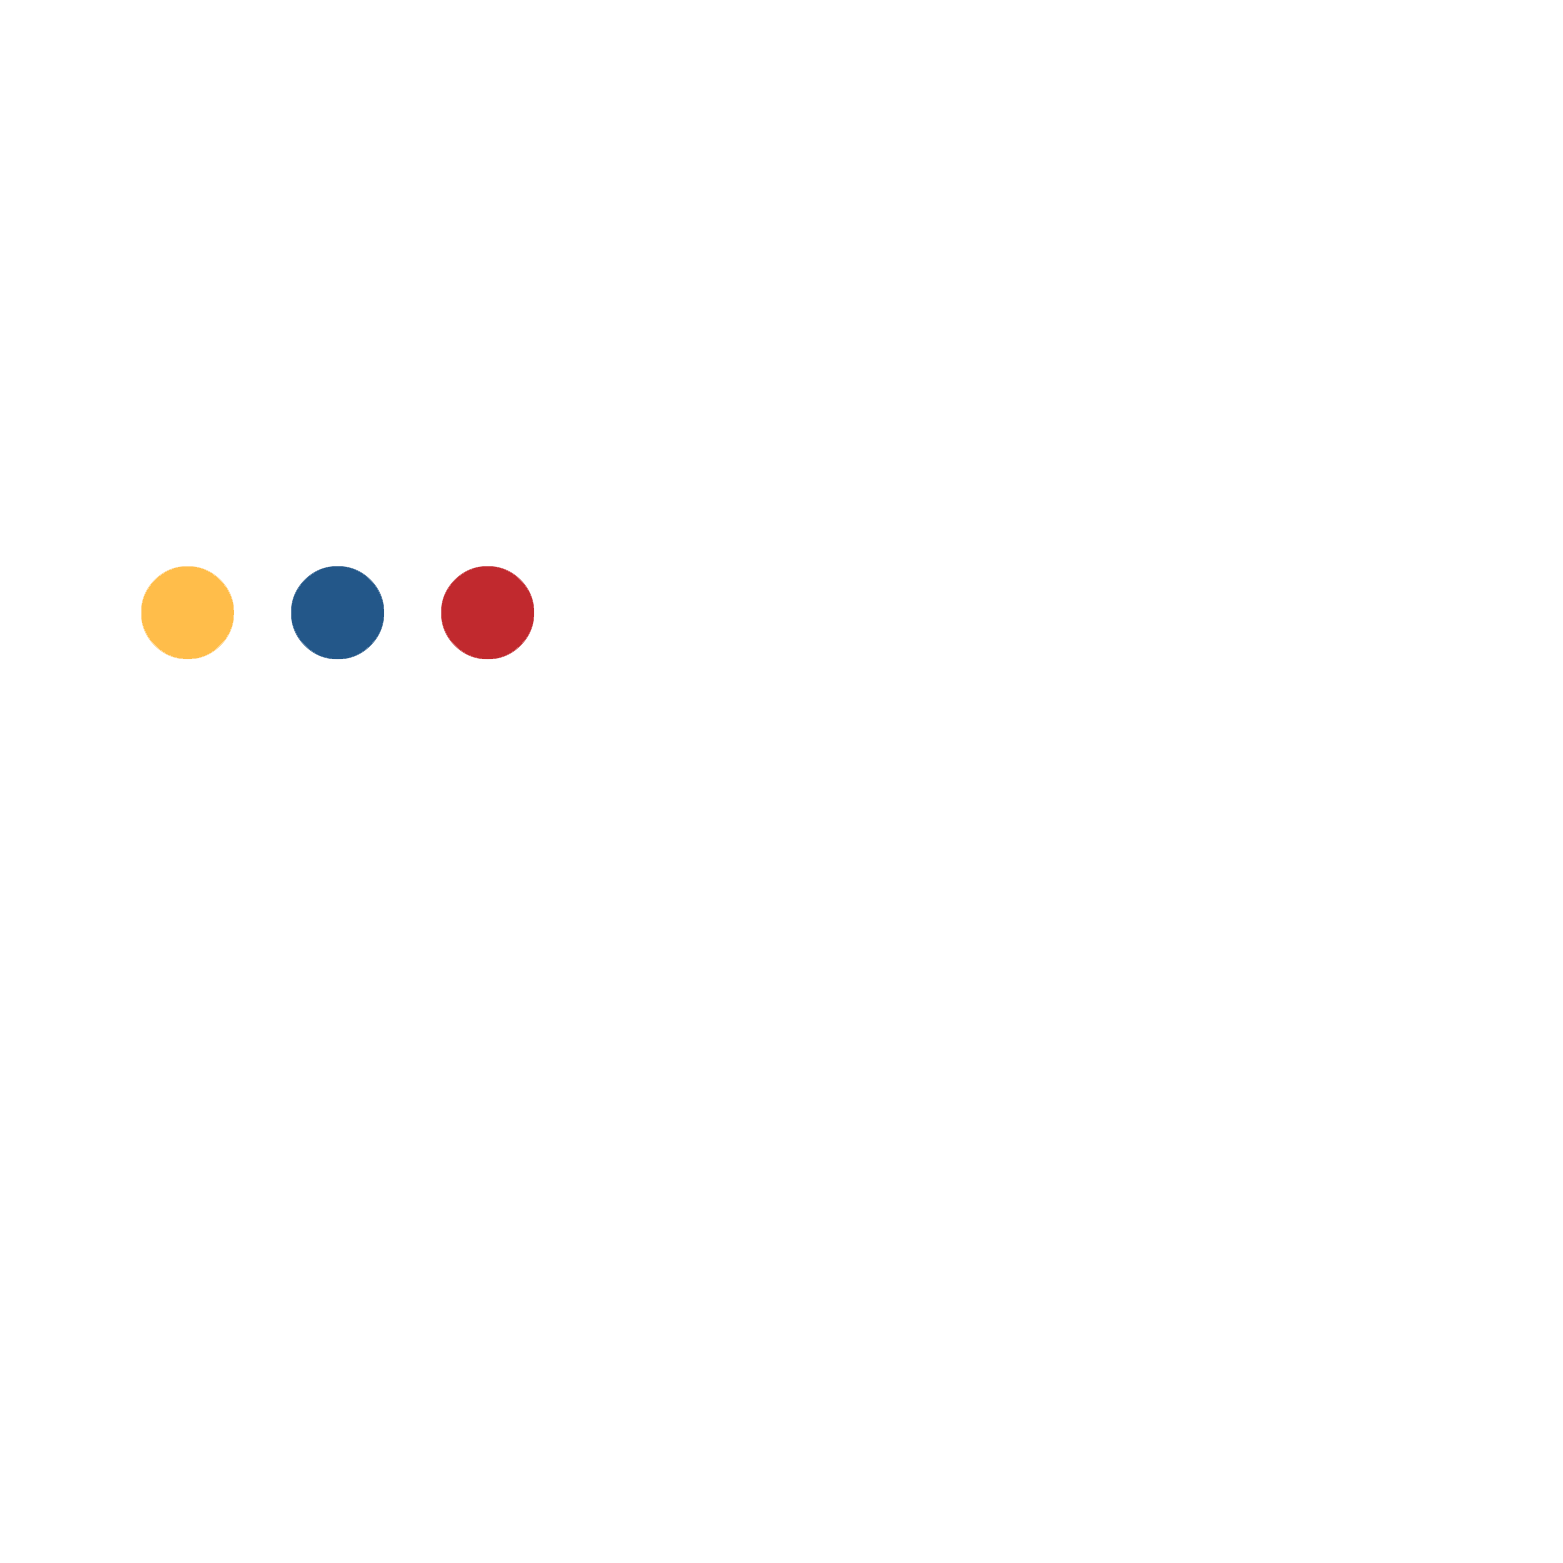 LSG Consulting